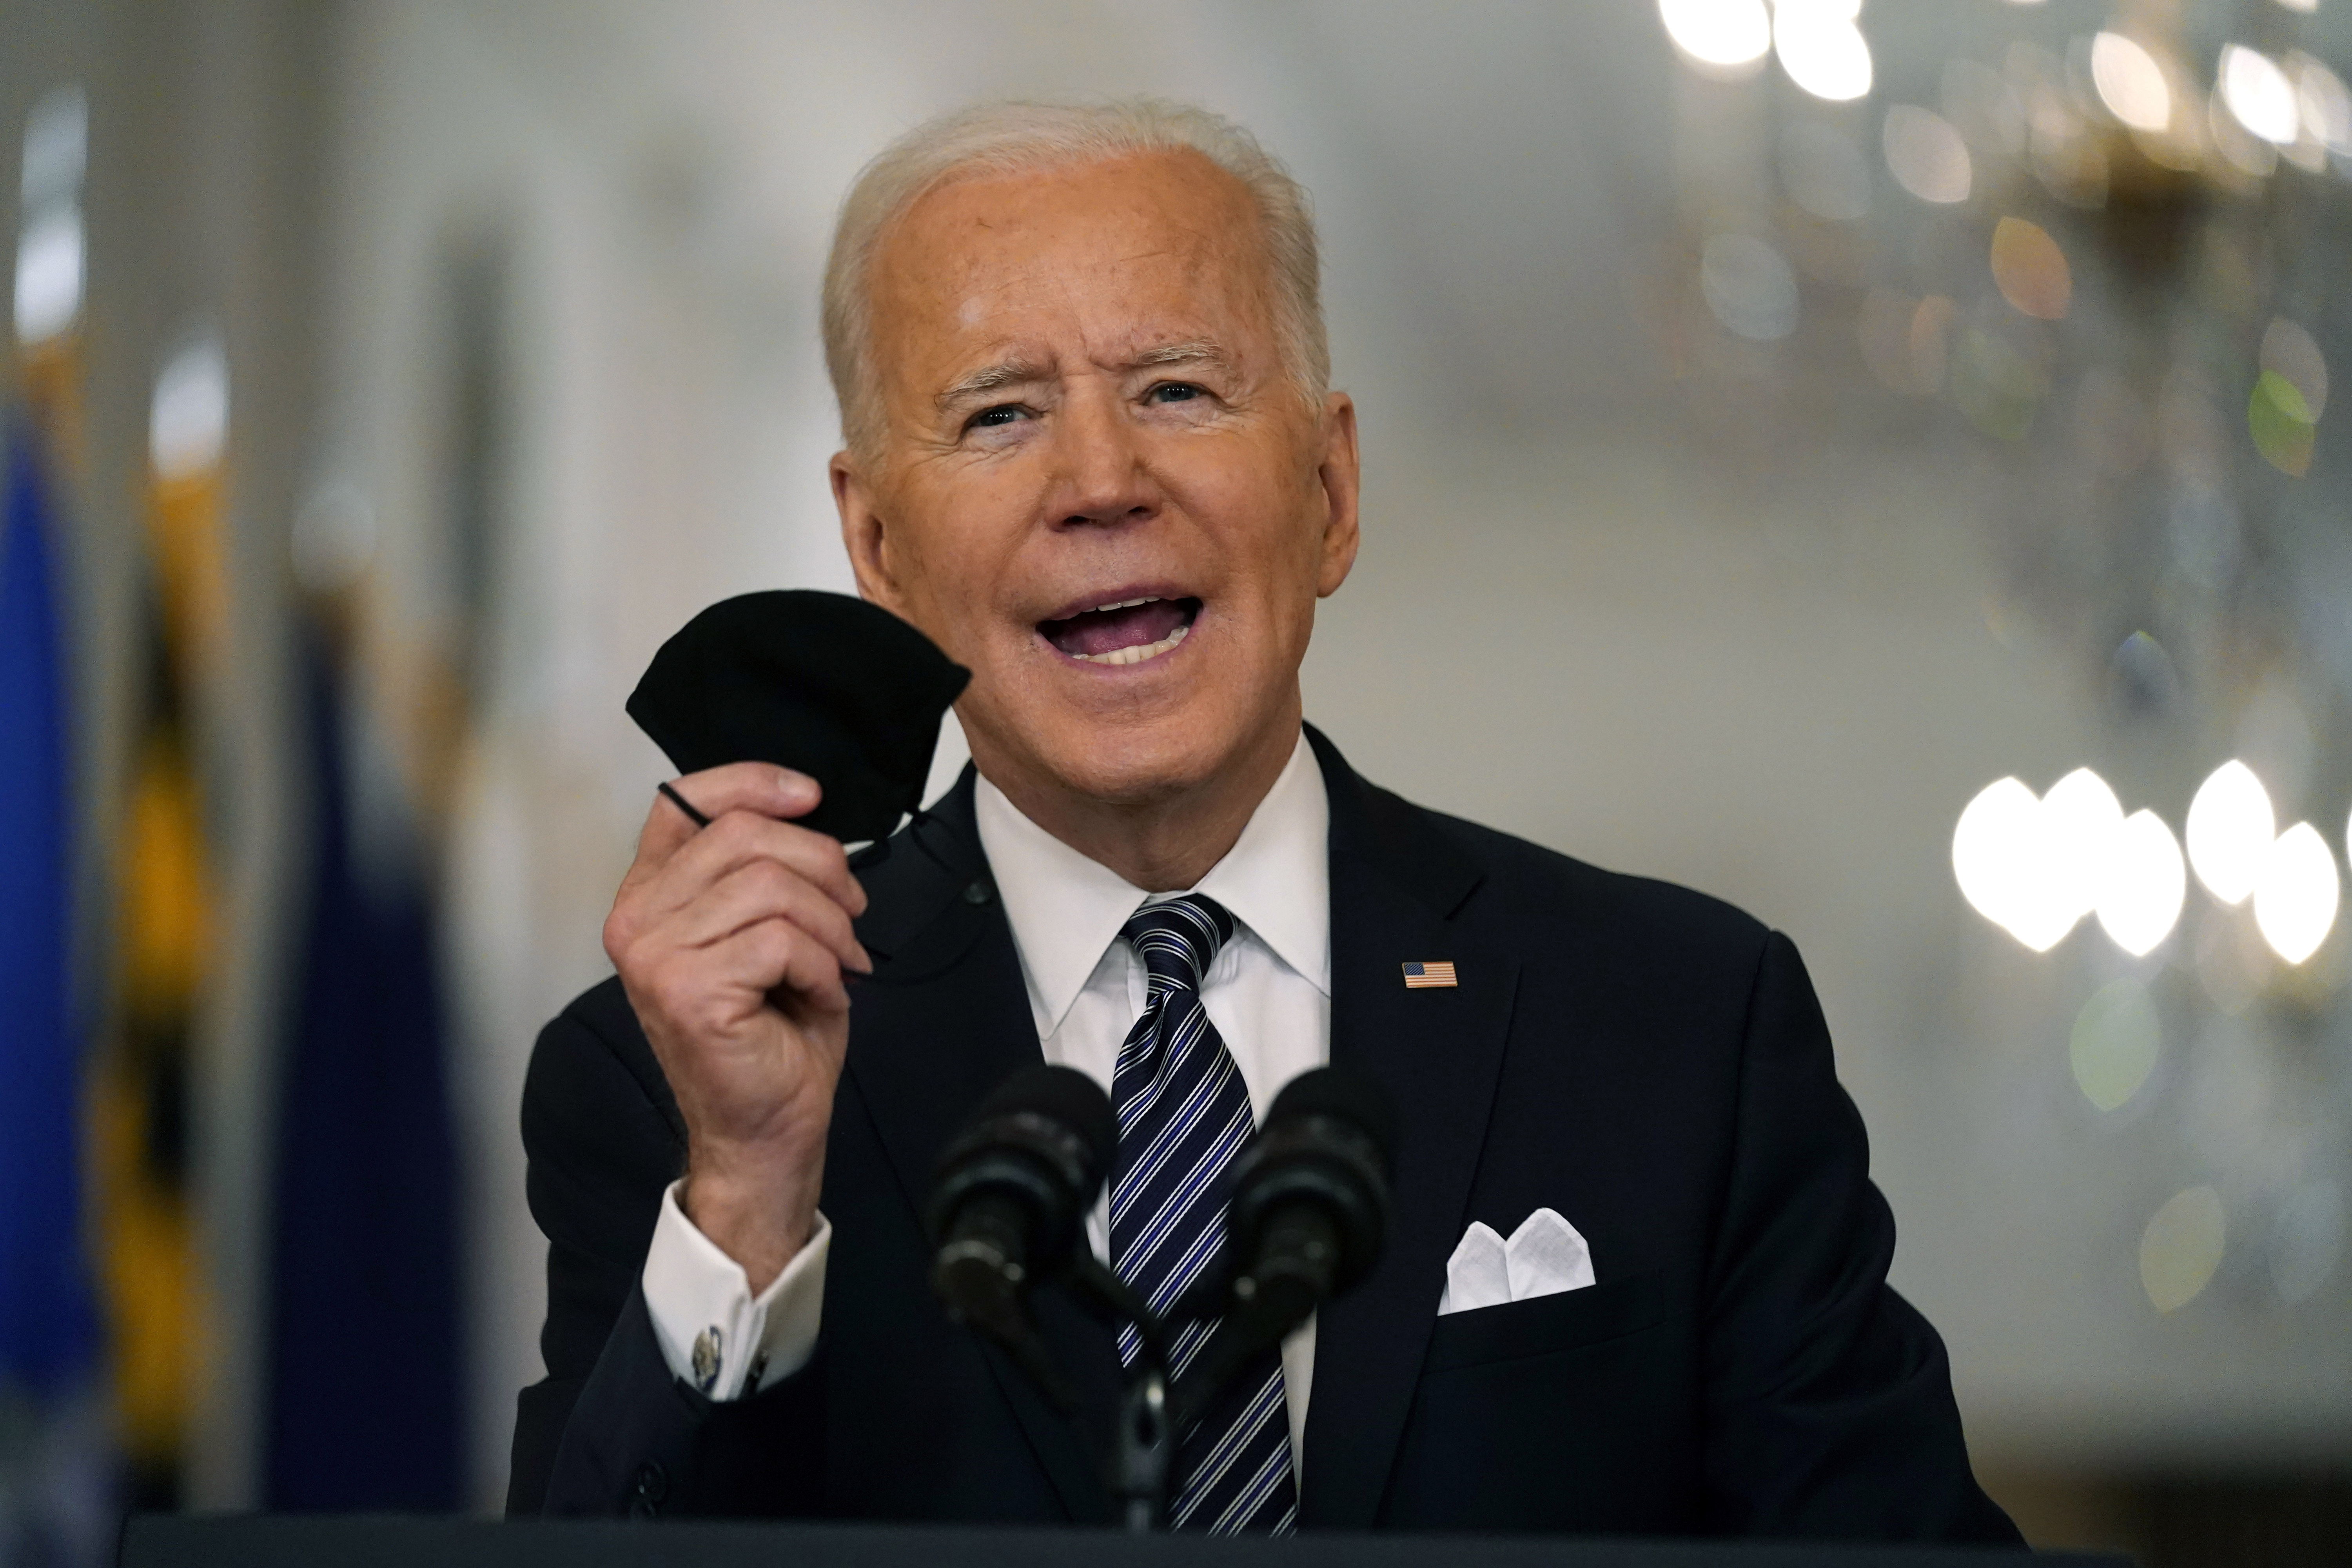 In this March 11, 2021, file photo, President Joe Biden holds up his face mask as he speaks about the COVID-19 pandemic during a prime-time address from the East Room of the White House in Washington.